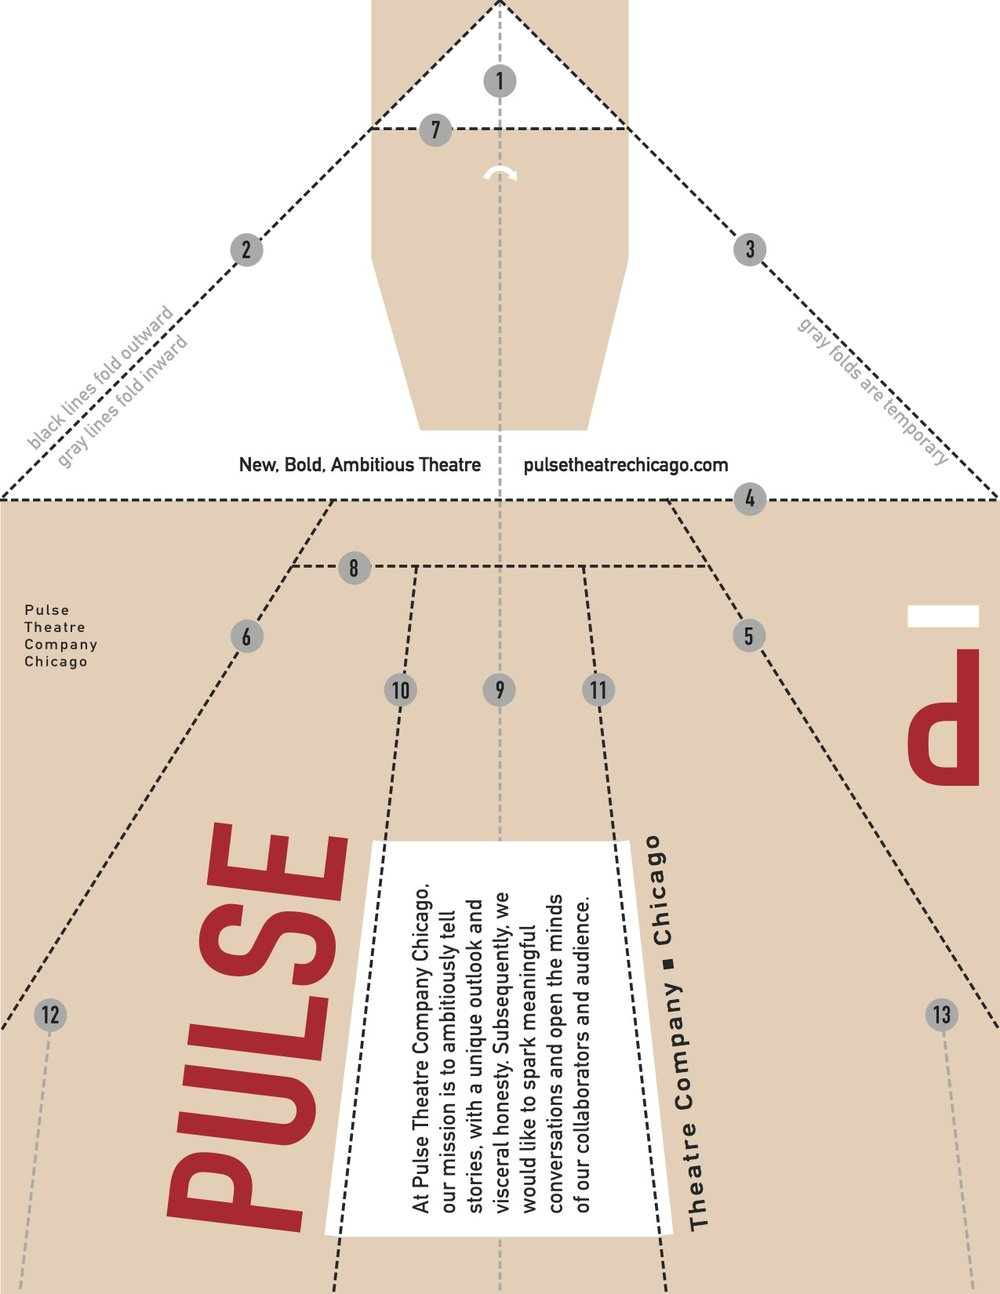 Paper Airplane guerrilla flyer for Pulse Theatre Company, Chris Jackson; 2014;  role: designer;  This flyer comprised of an interactive and playful hook to grab attention in the Chicago loop.